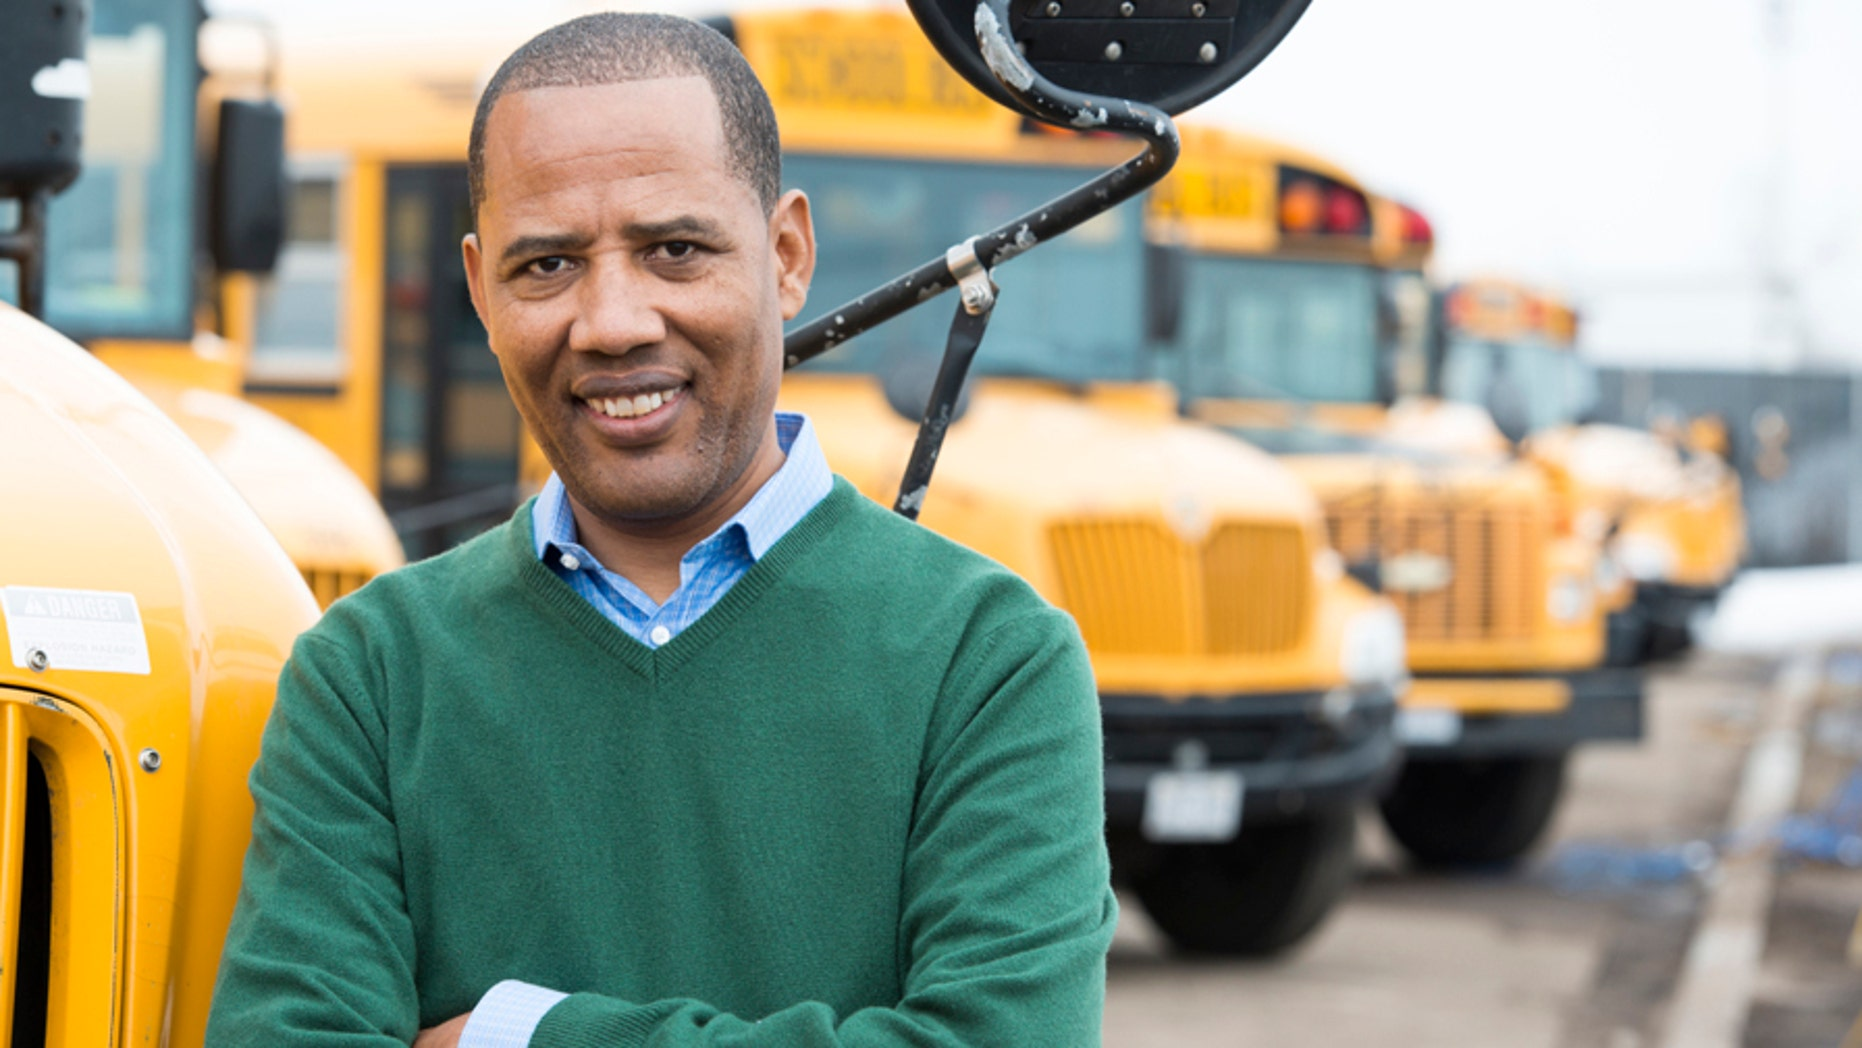 Minneapolis entrepreneur Tashitaa Tufaa came to the United States from his native Ethiopia with nothing to his name and worked his way up from washing dishes to running his own transportation company that employs 300 workers.